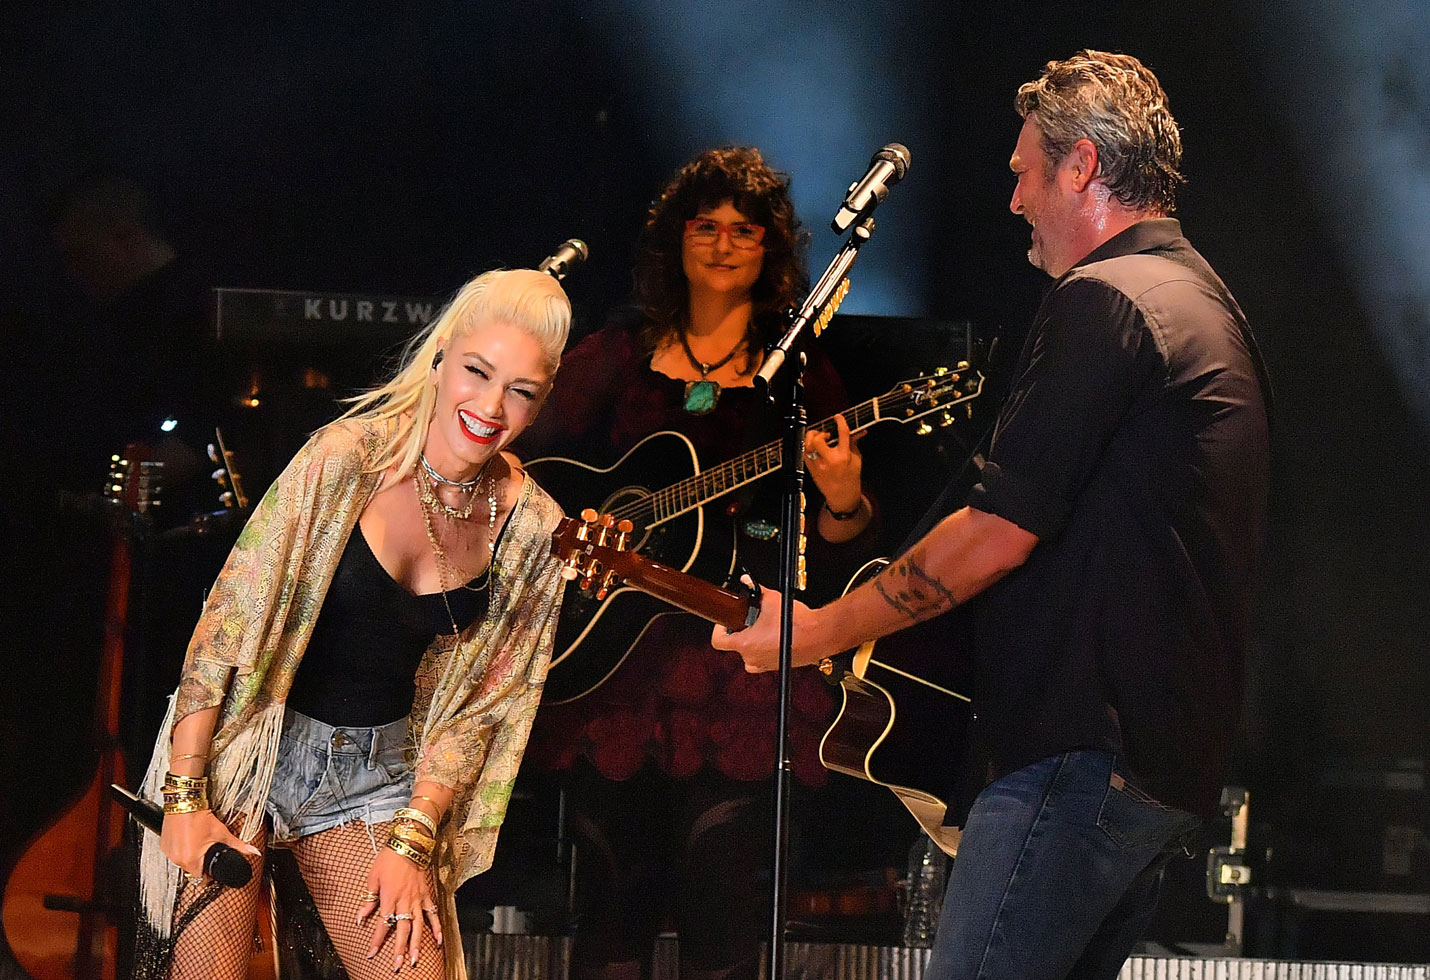 Blake Shelton & Gwen Stefani Pack On The PDA On Stage: Photos